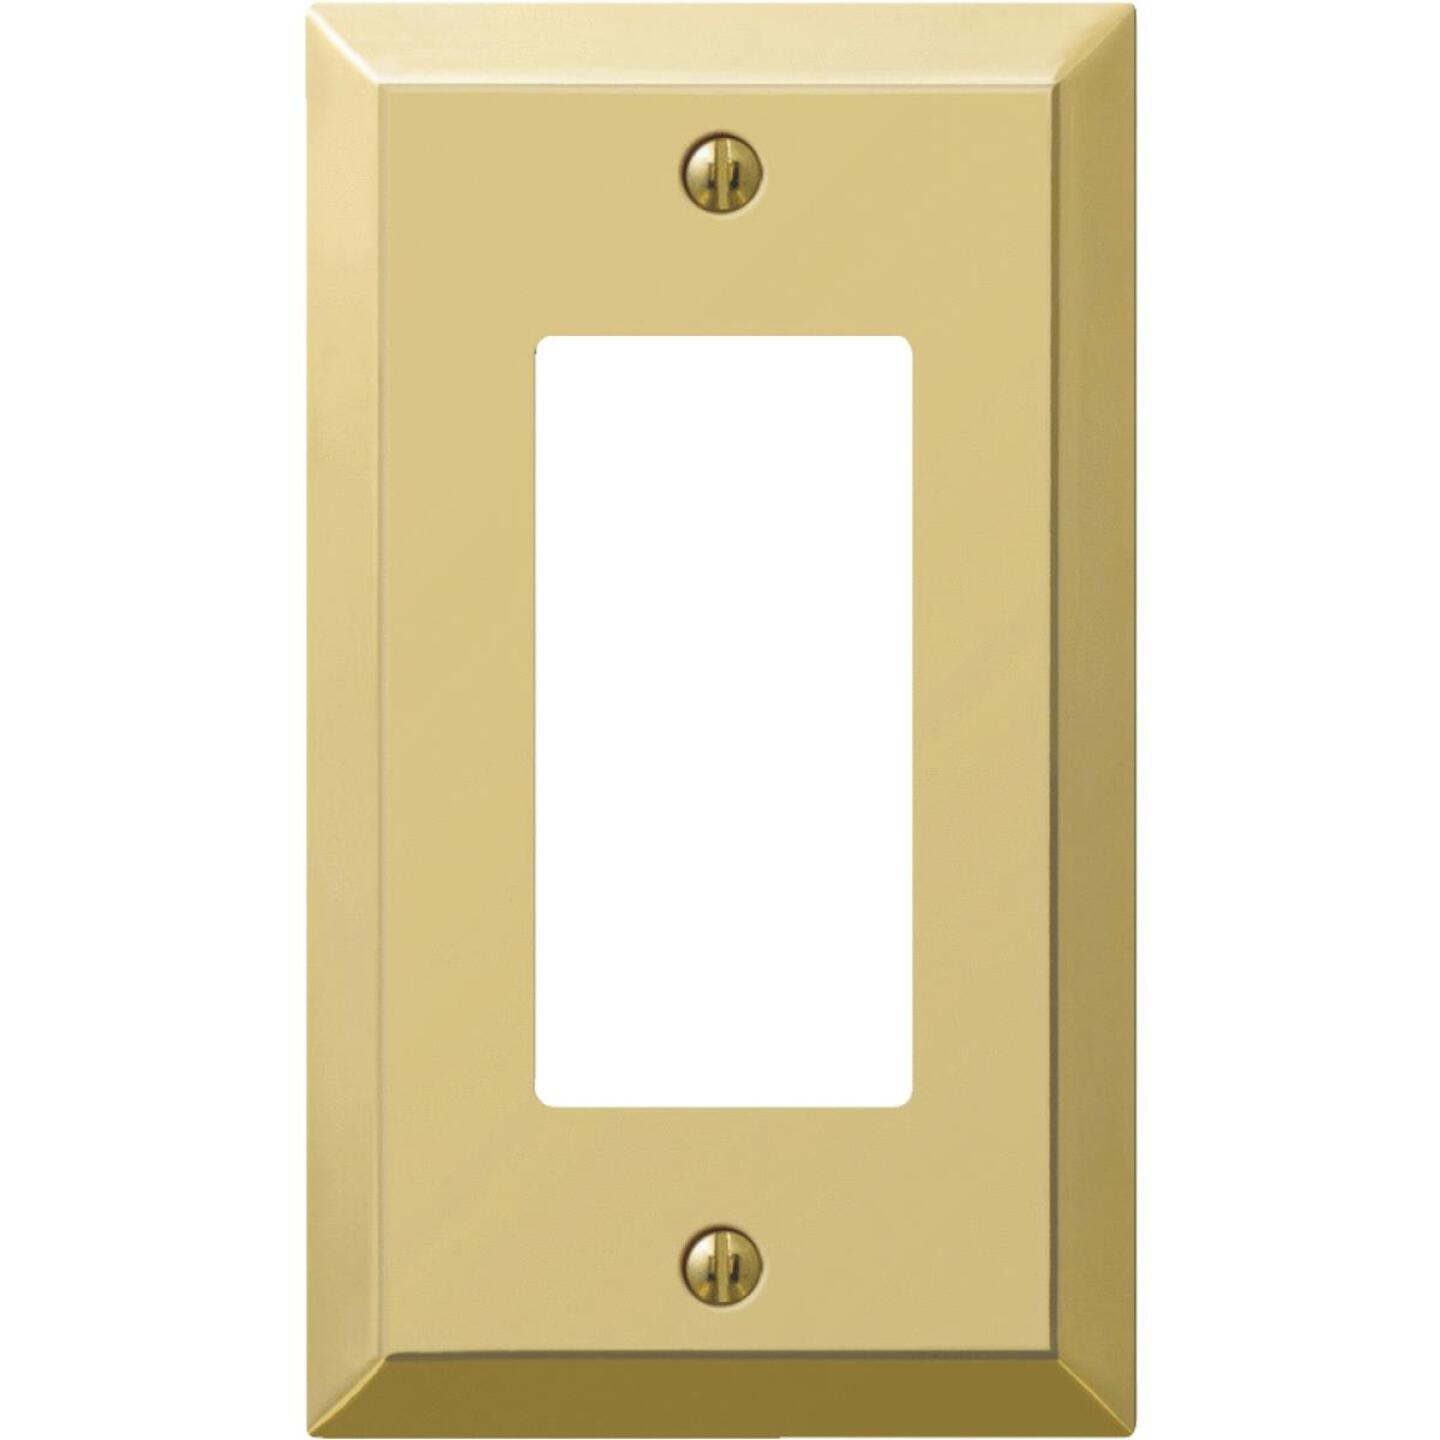 Amerelle 1-Gang Stamped Steel Rocker Decorator Wall Plate, Polished Brass Image 1